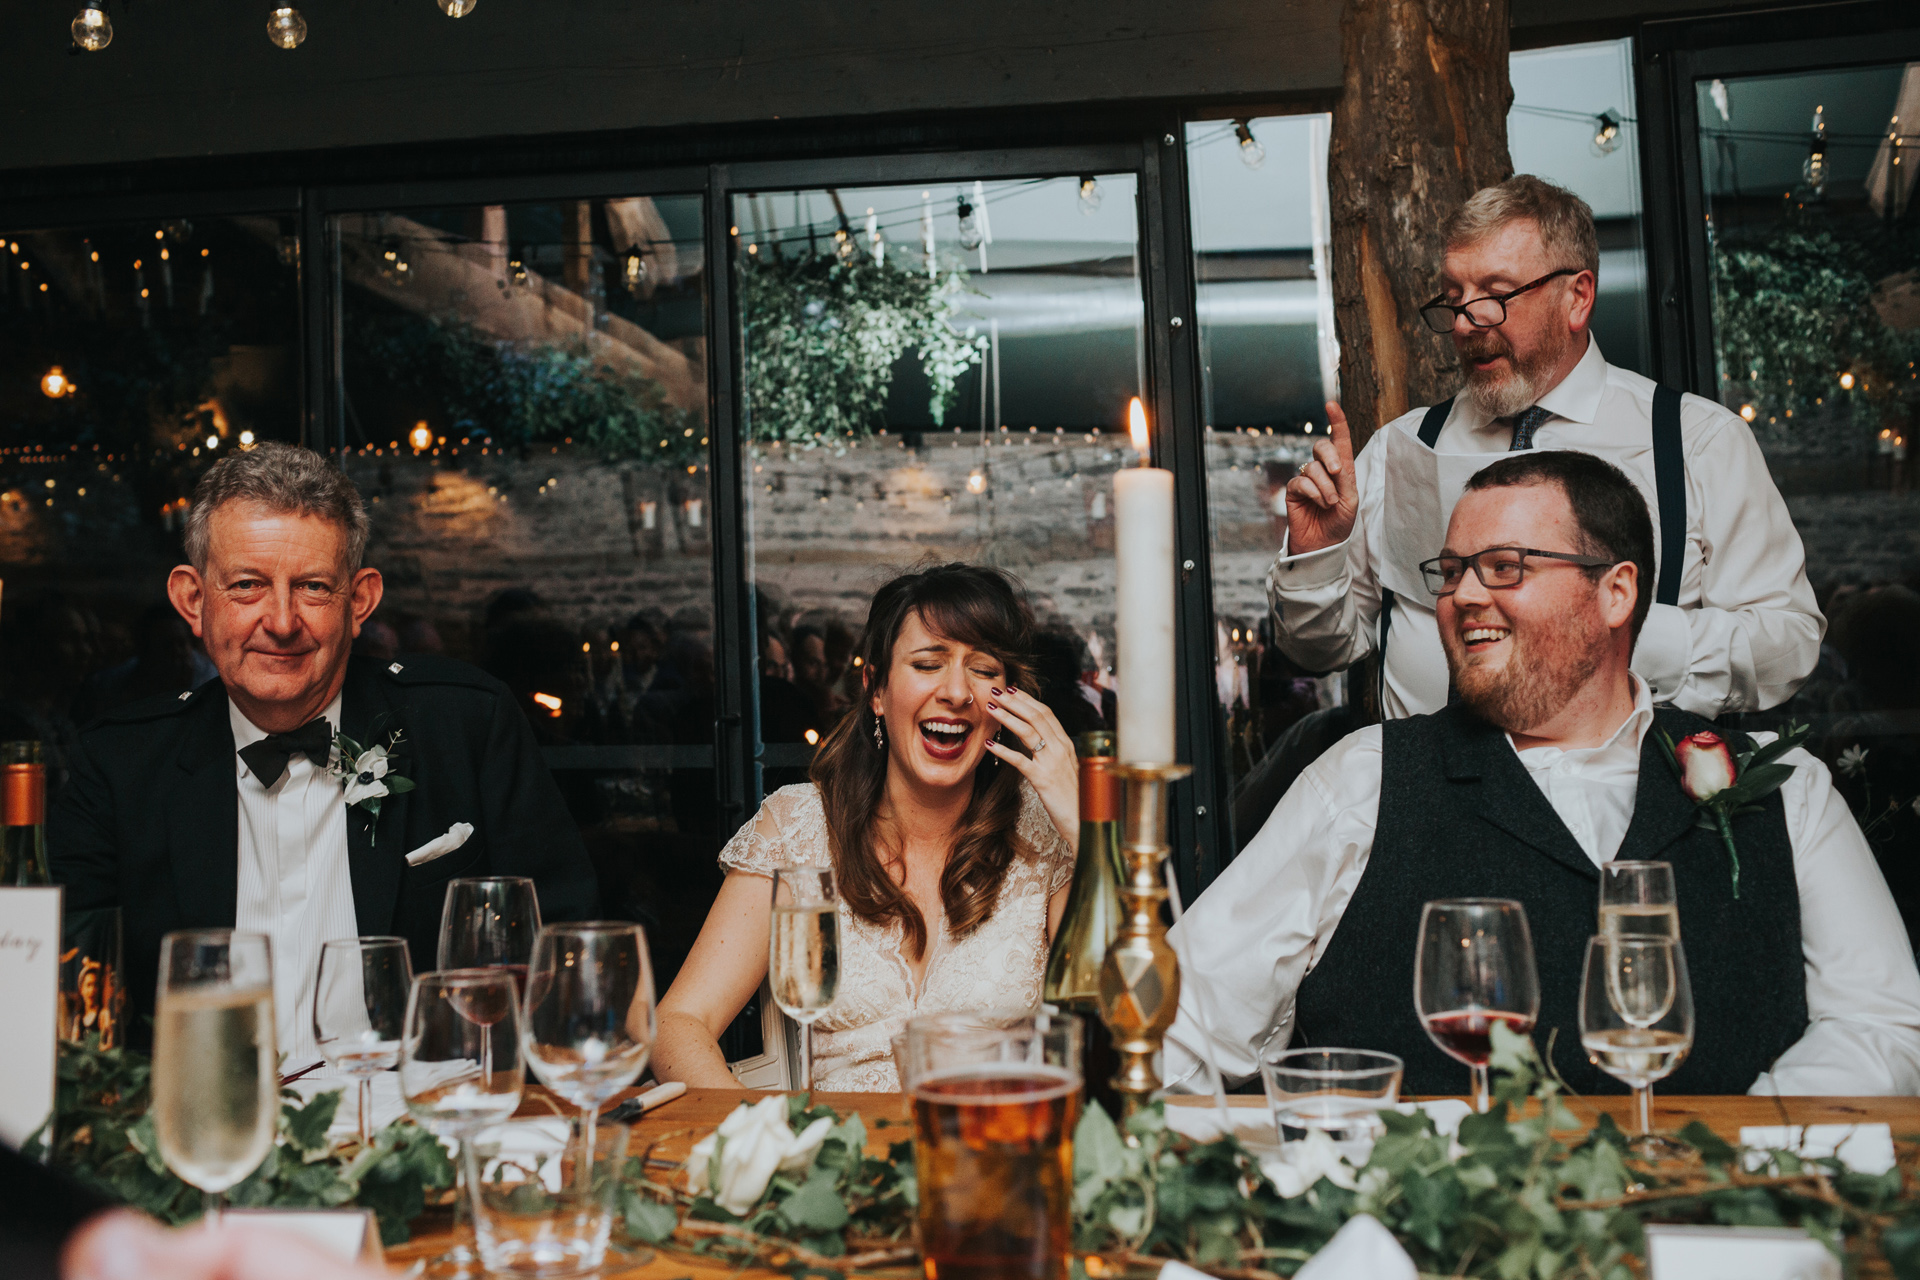 Father of the groom gives his speech as bride cries laughing.